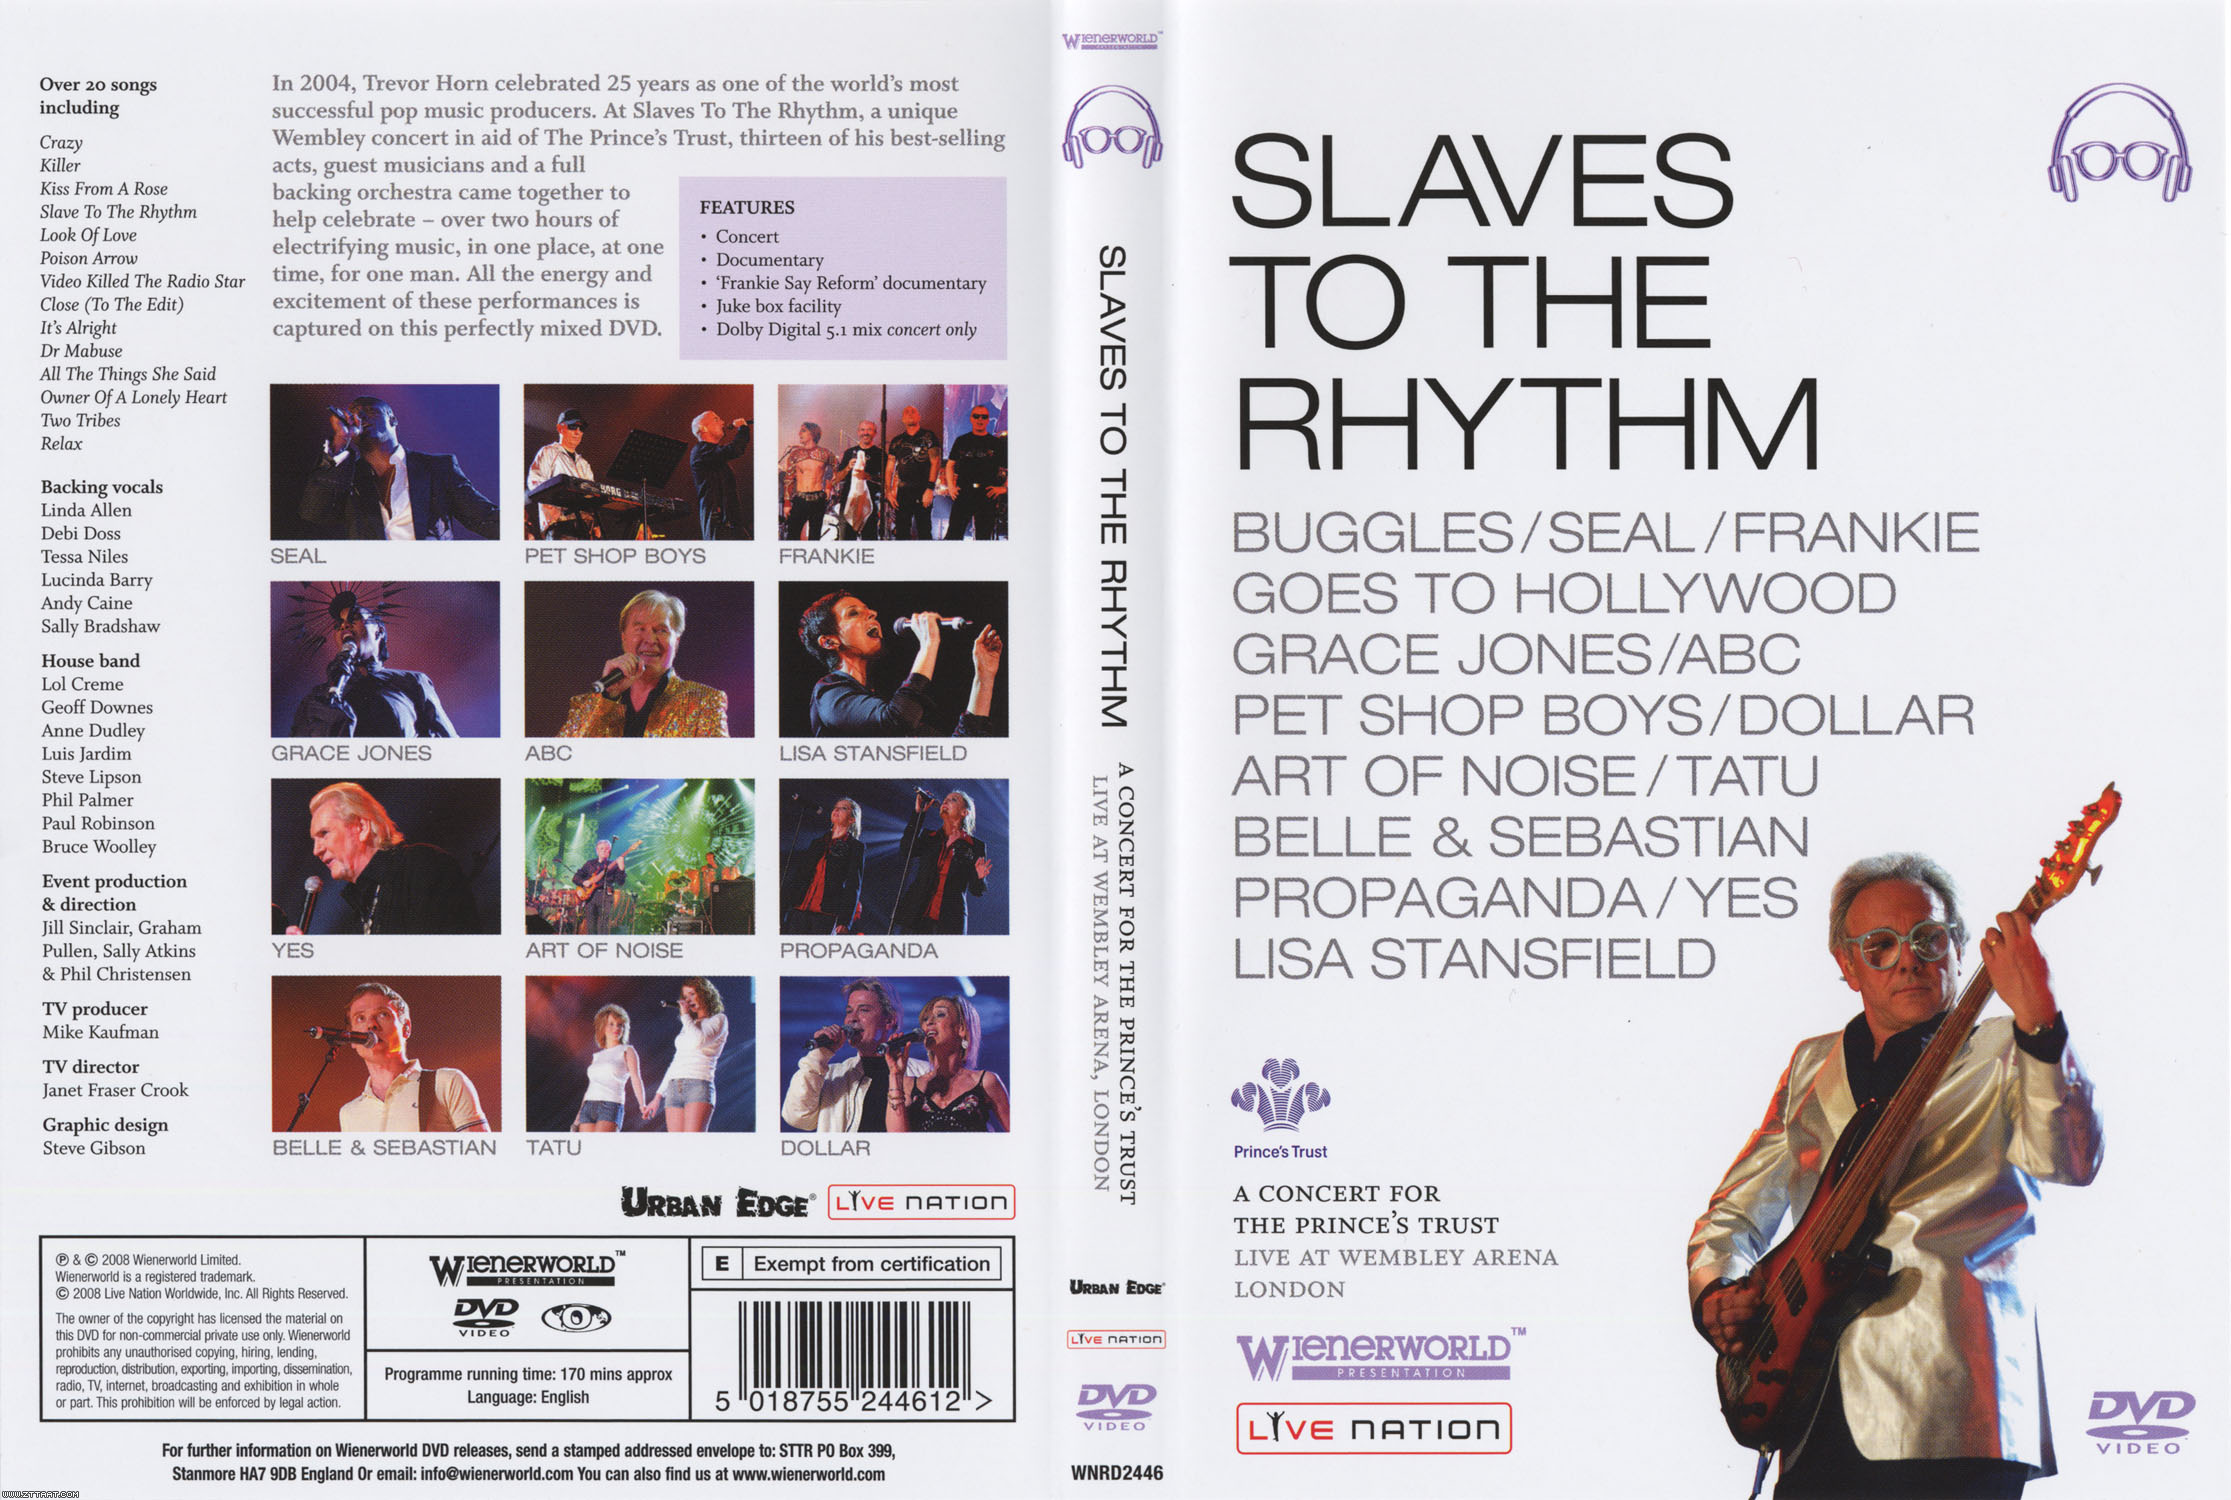 Slaves to the rhythm (Recorded live at Wembley Arena, London